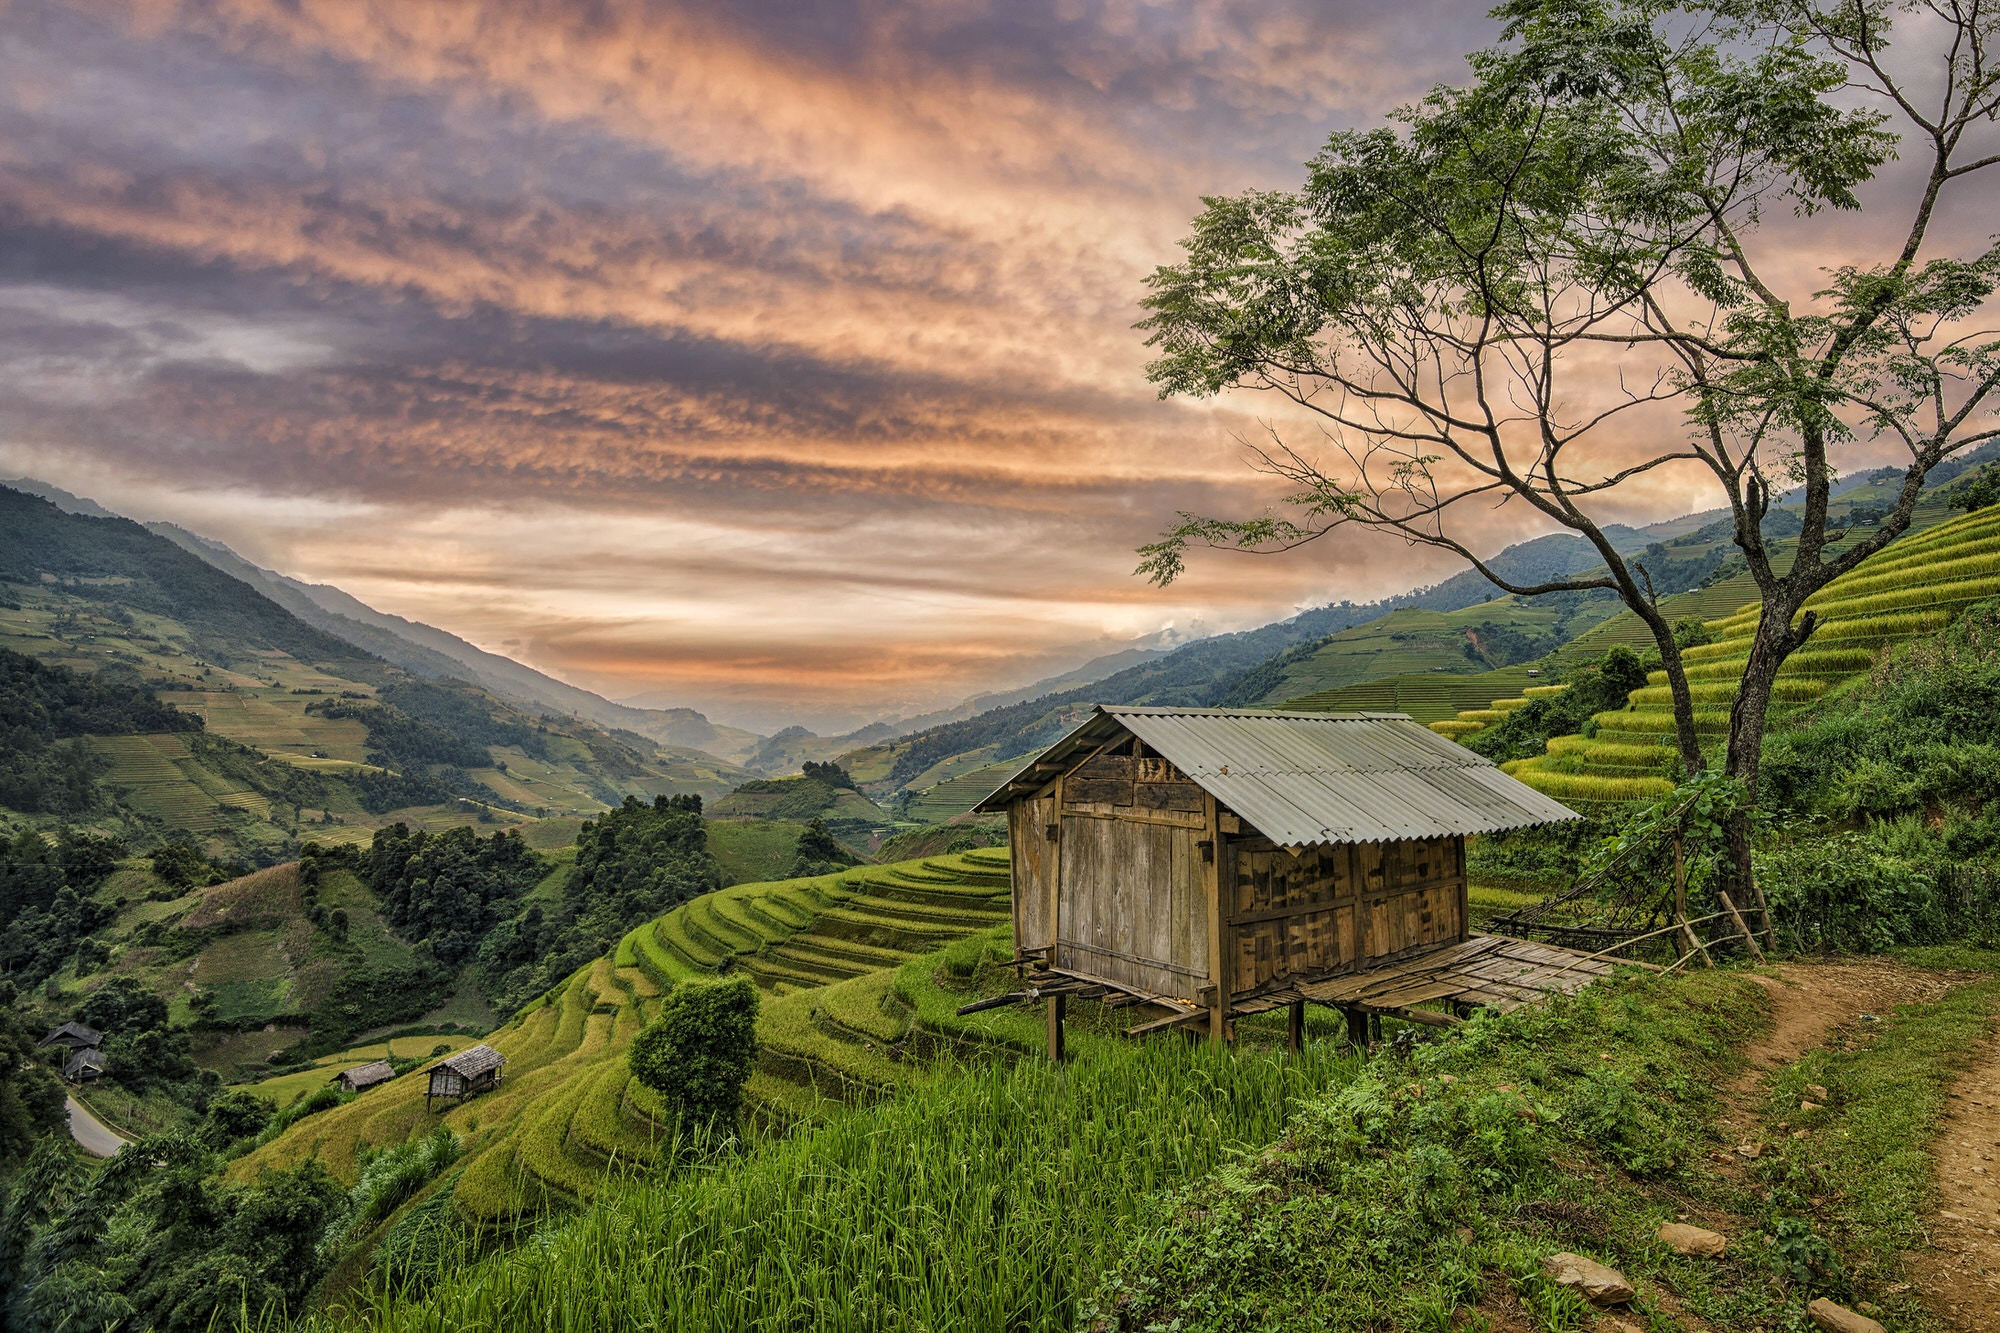 Small house overlooking the green rice terraces of Sapa, Vietnam